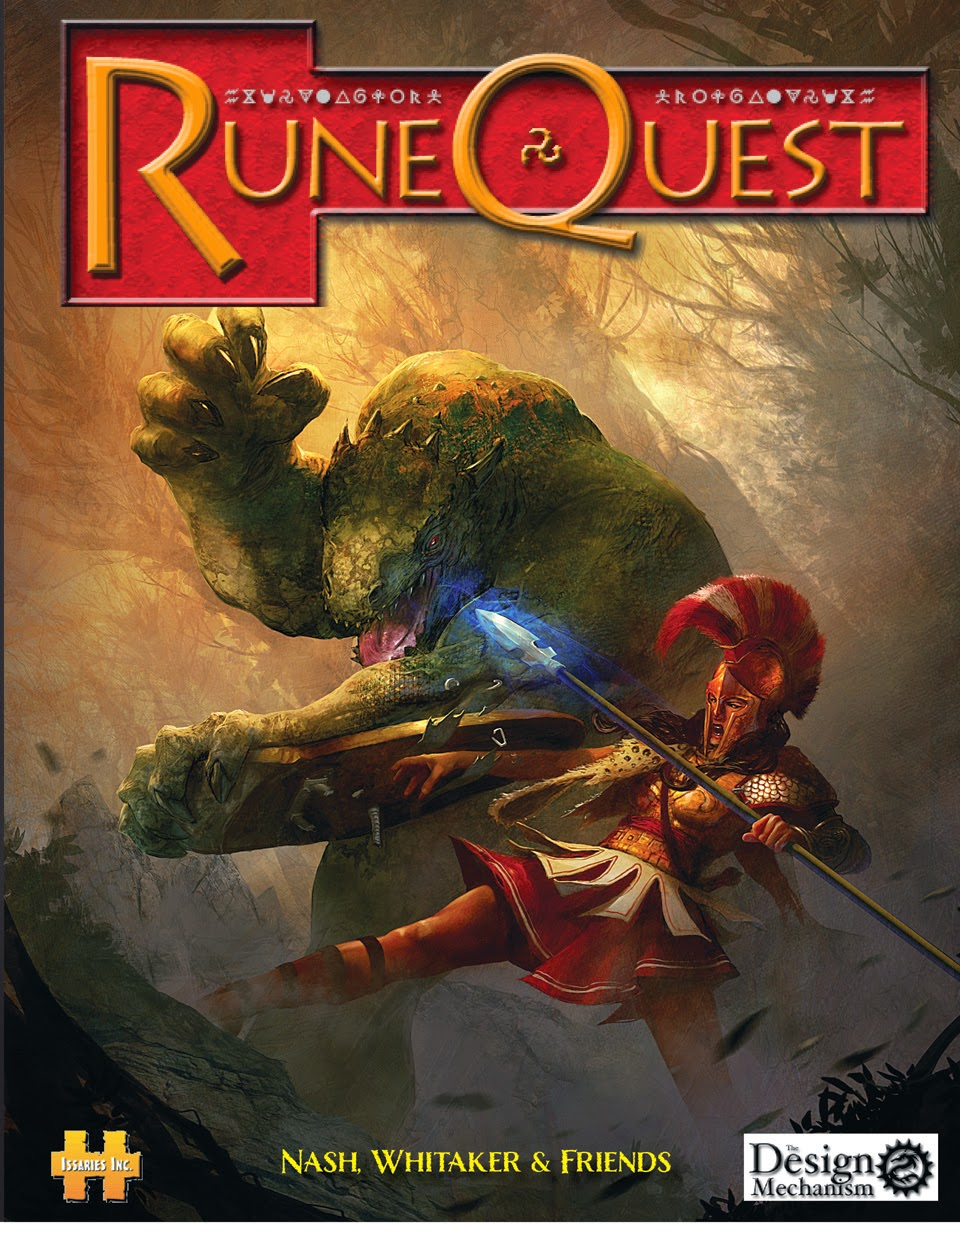 Channel Zero: Converting D&D to Runequest